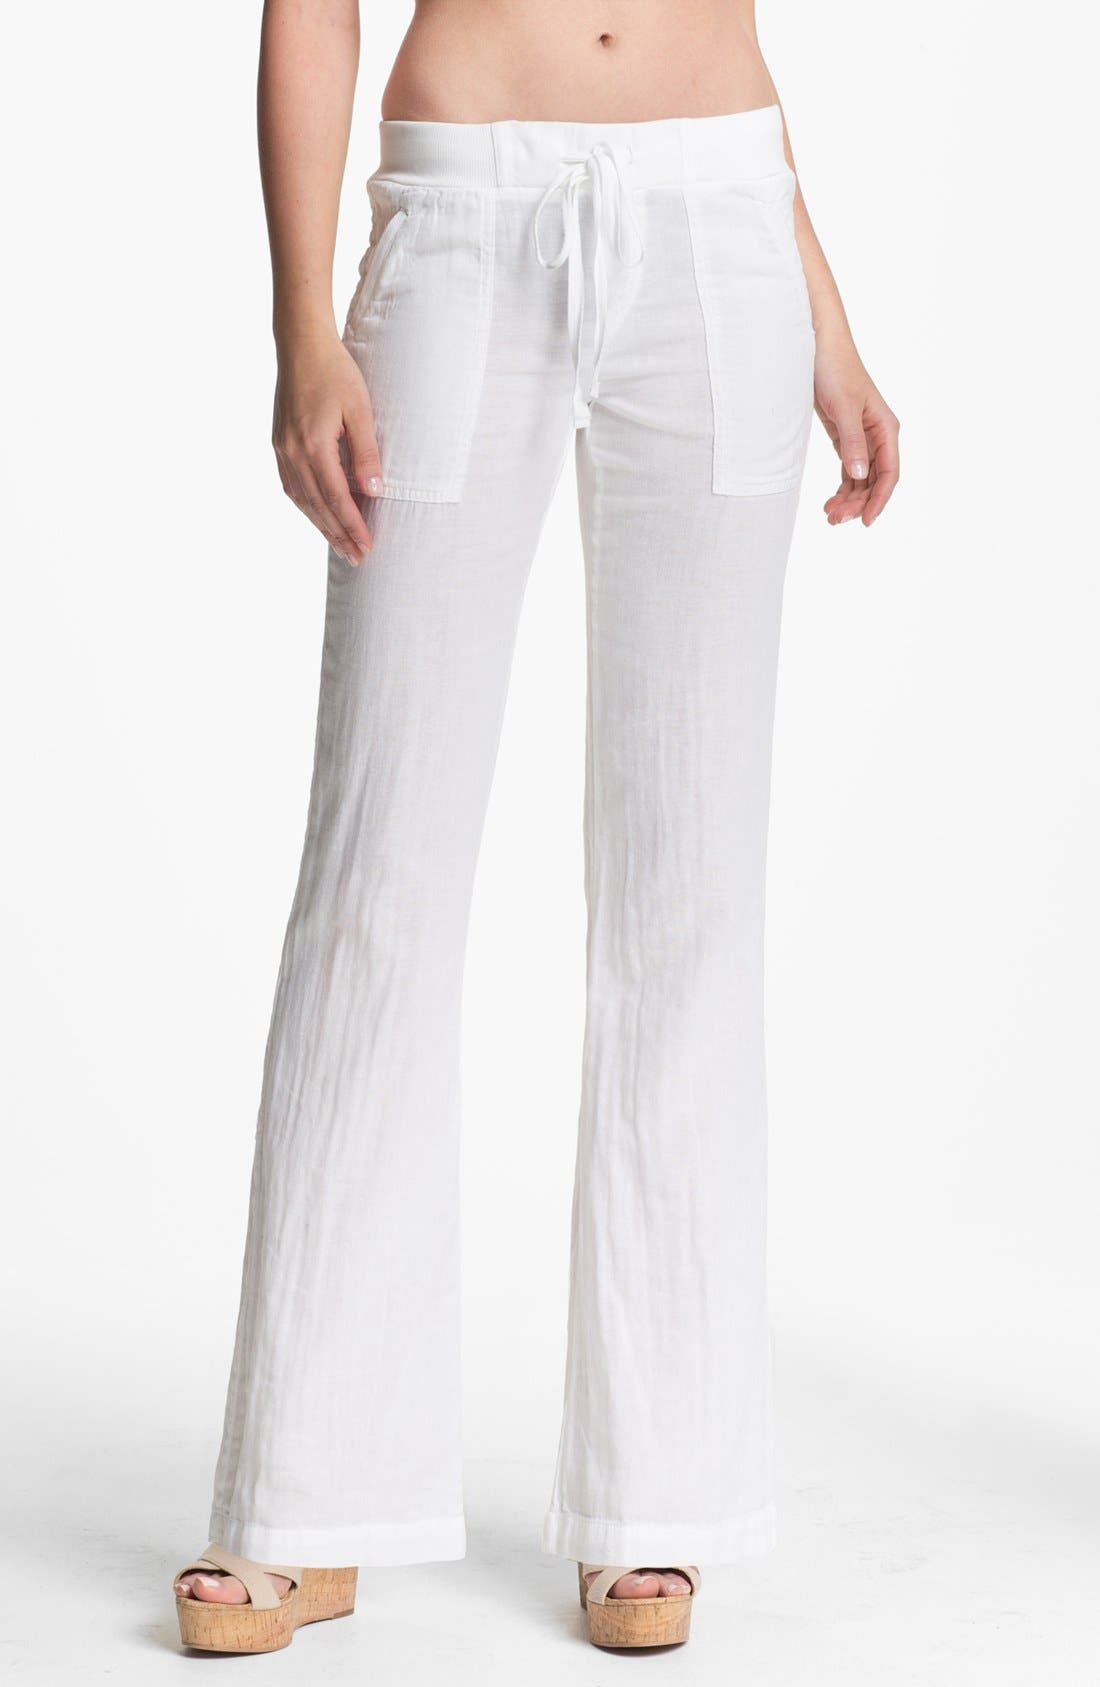 Alternate Image 1 Selected - Splendid 'Hermosa' Drawstring Pants